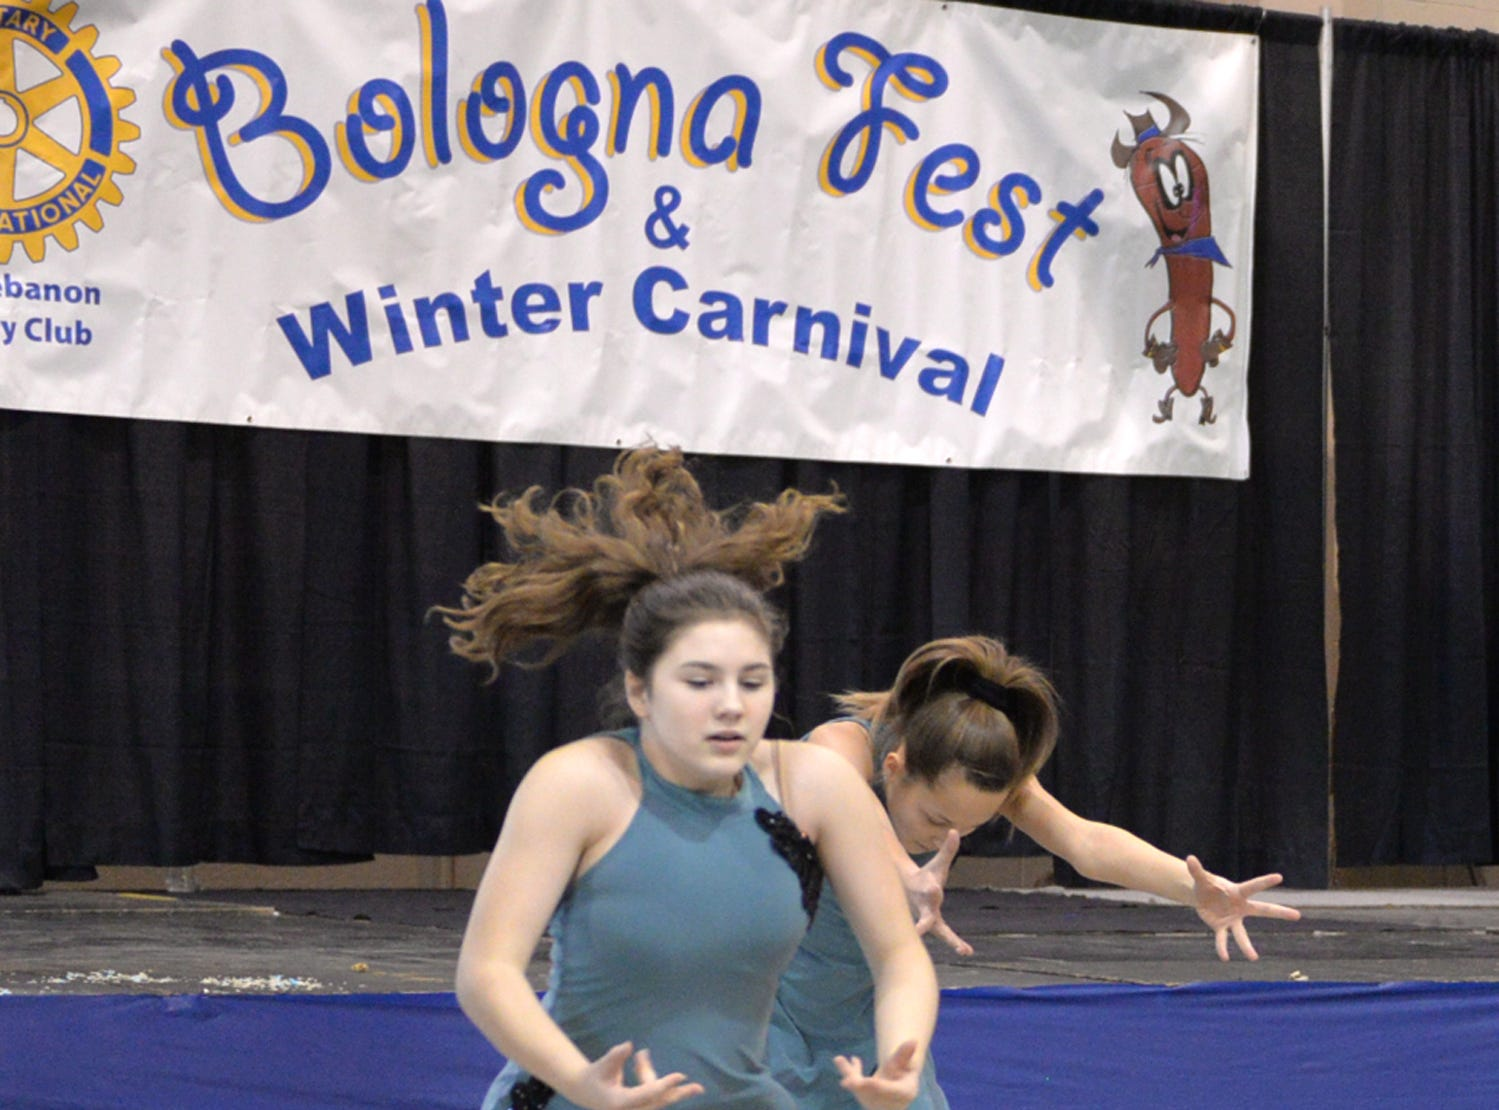 The Jonestown Dance Studio performs at The Lebanon Rotary Club's Bologna Fest & Winter Carnival held on Saturday, January 26 at the Lebanon Valley Expo Center.